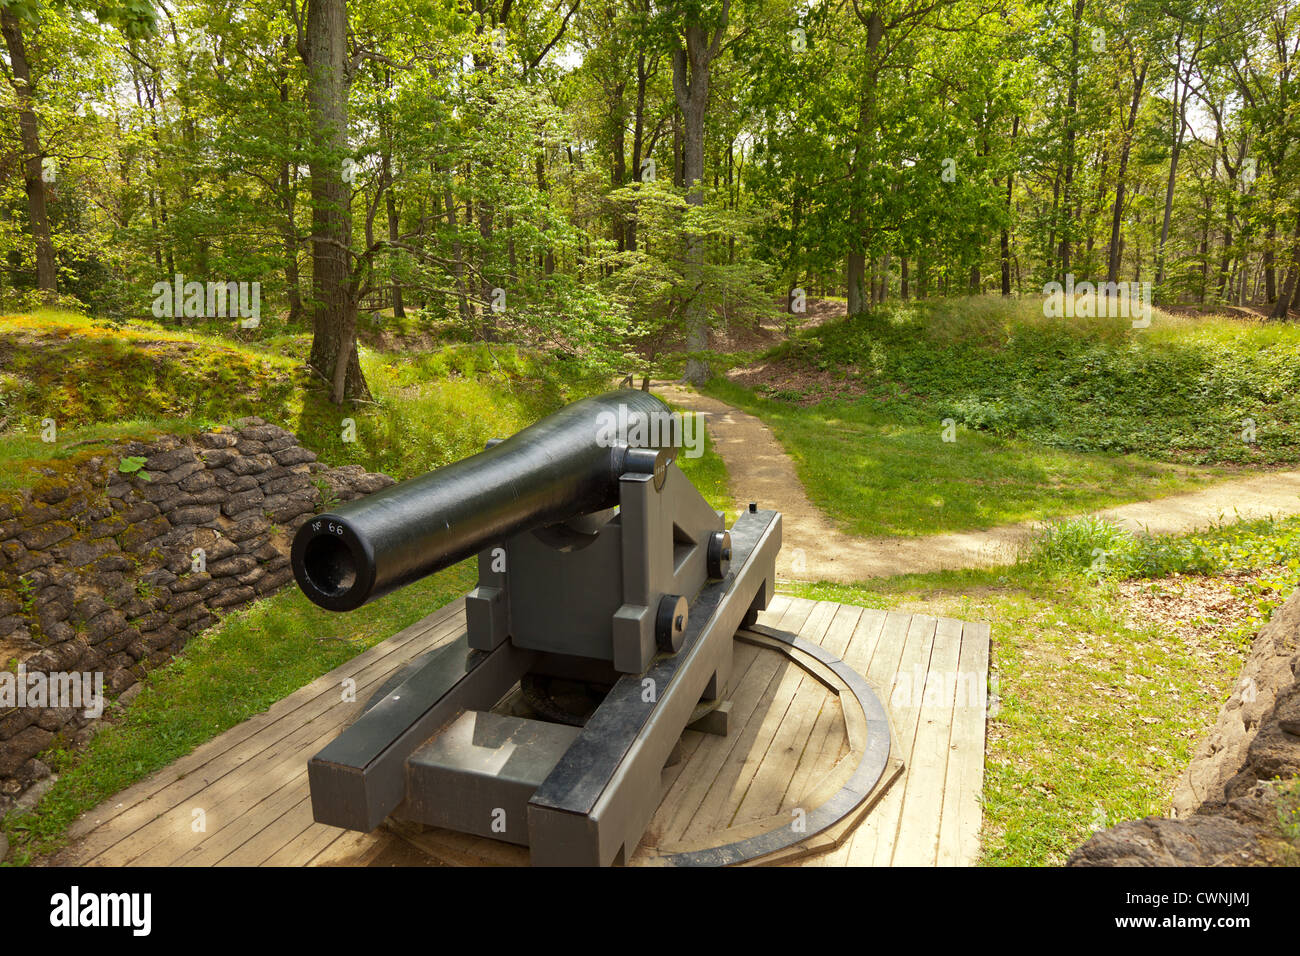 View from front of Cannon overlooking James River at Drewry's Bluff, part of Richmond National Battlefield Park - Stock Image